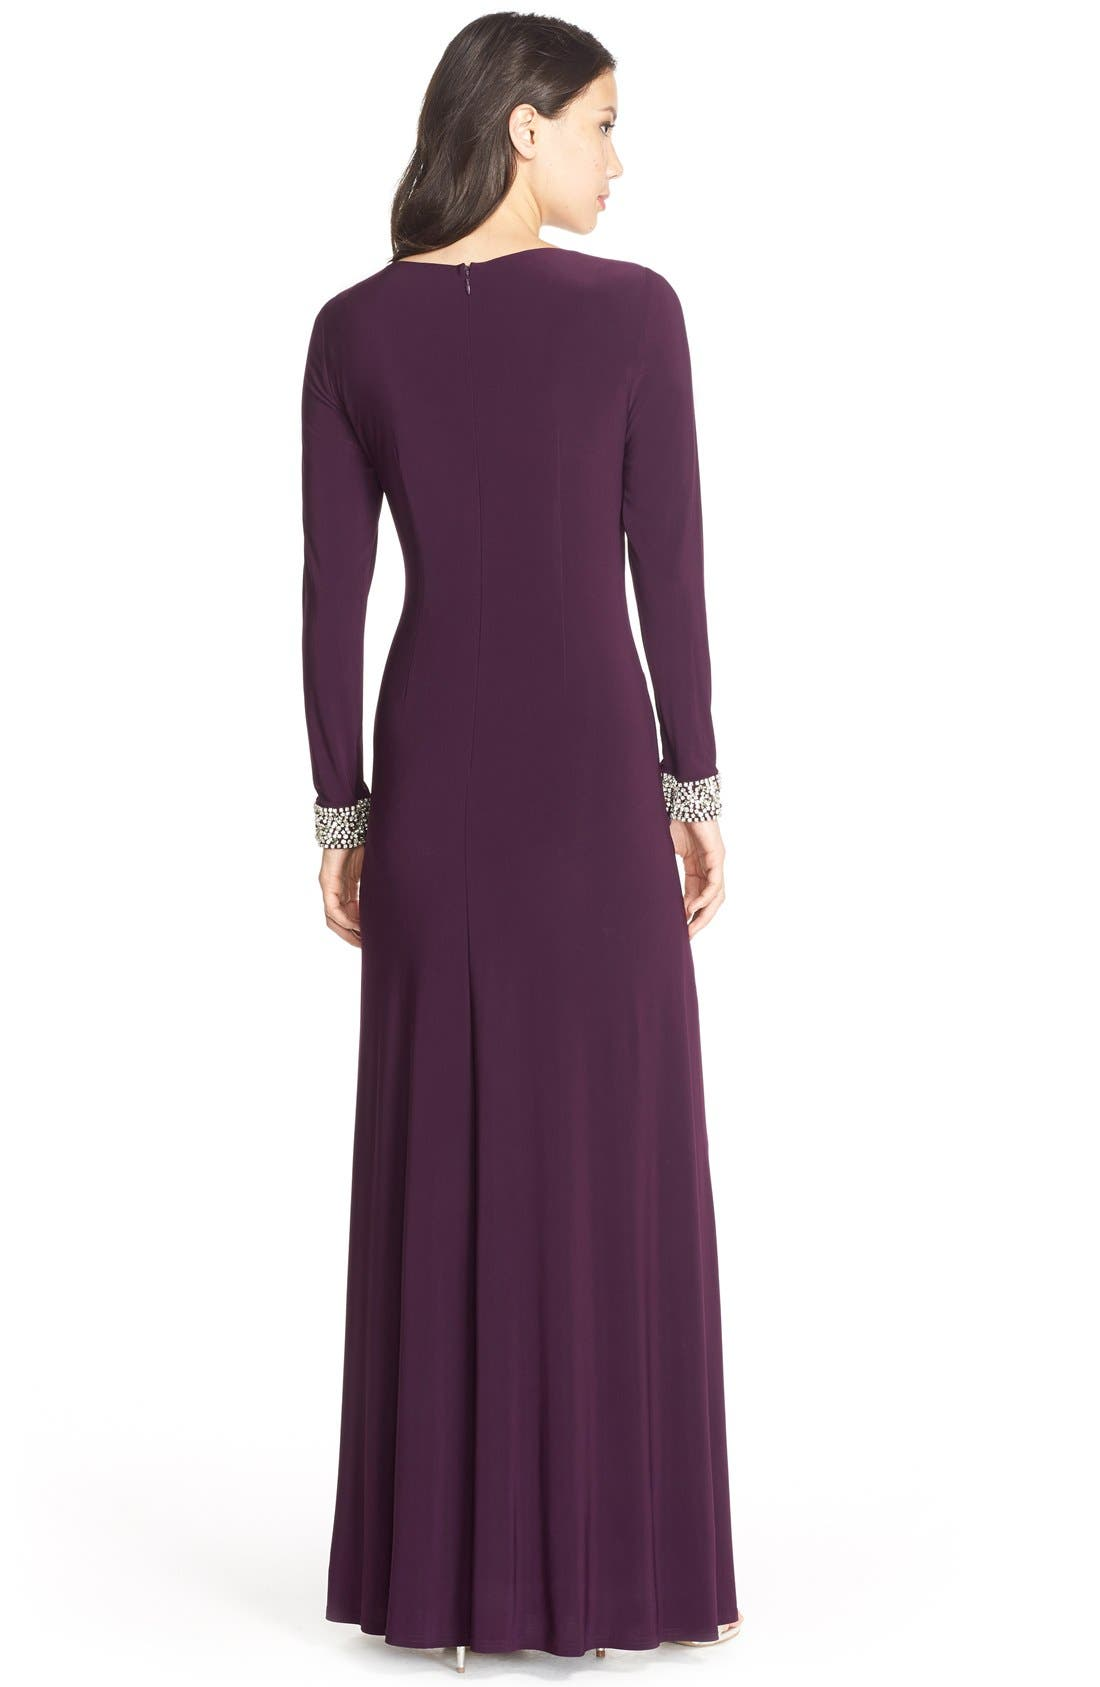 Beaded Cuff Ruched Jersey Gown,                             Alternate thumbnail 9, color,                             505